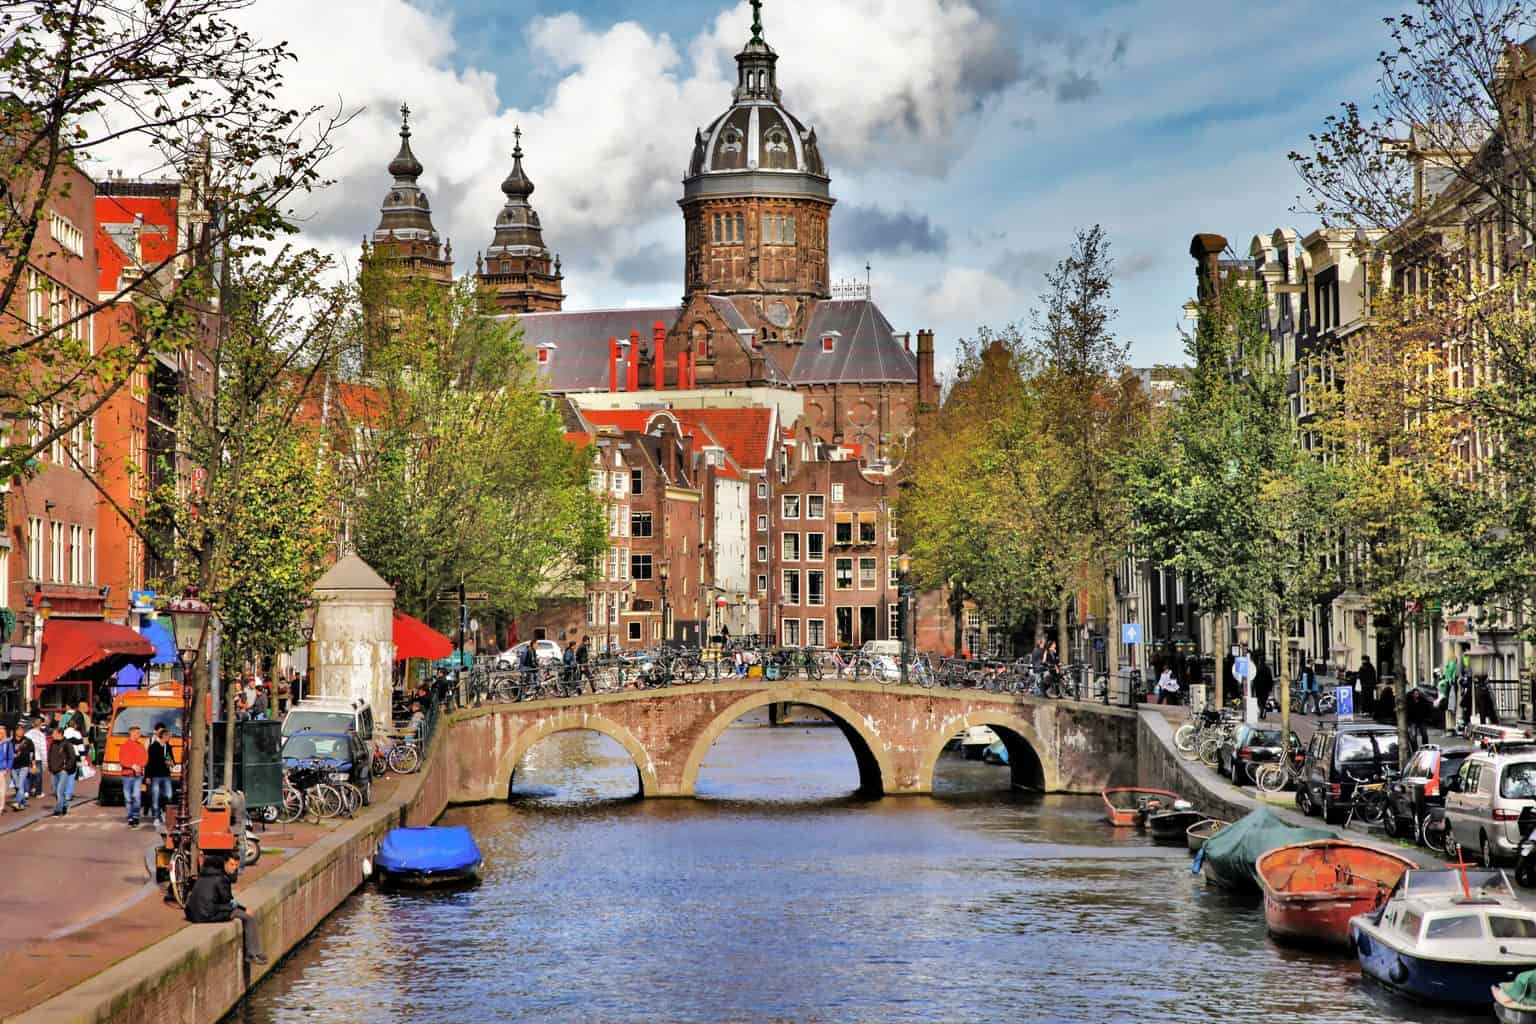 The picturesque beauty of Amsterdam's iconic canals.